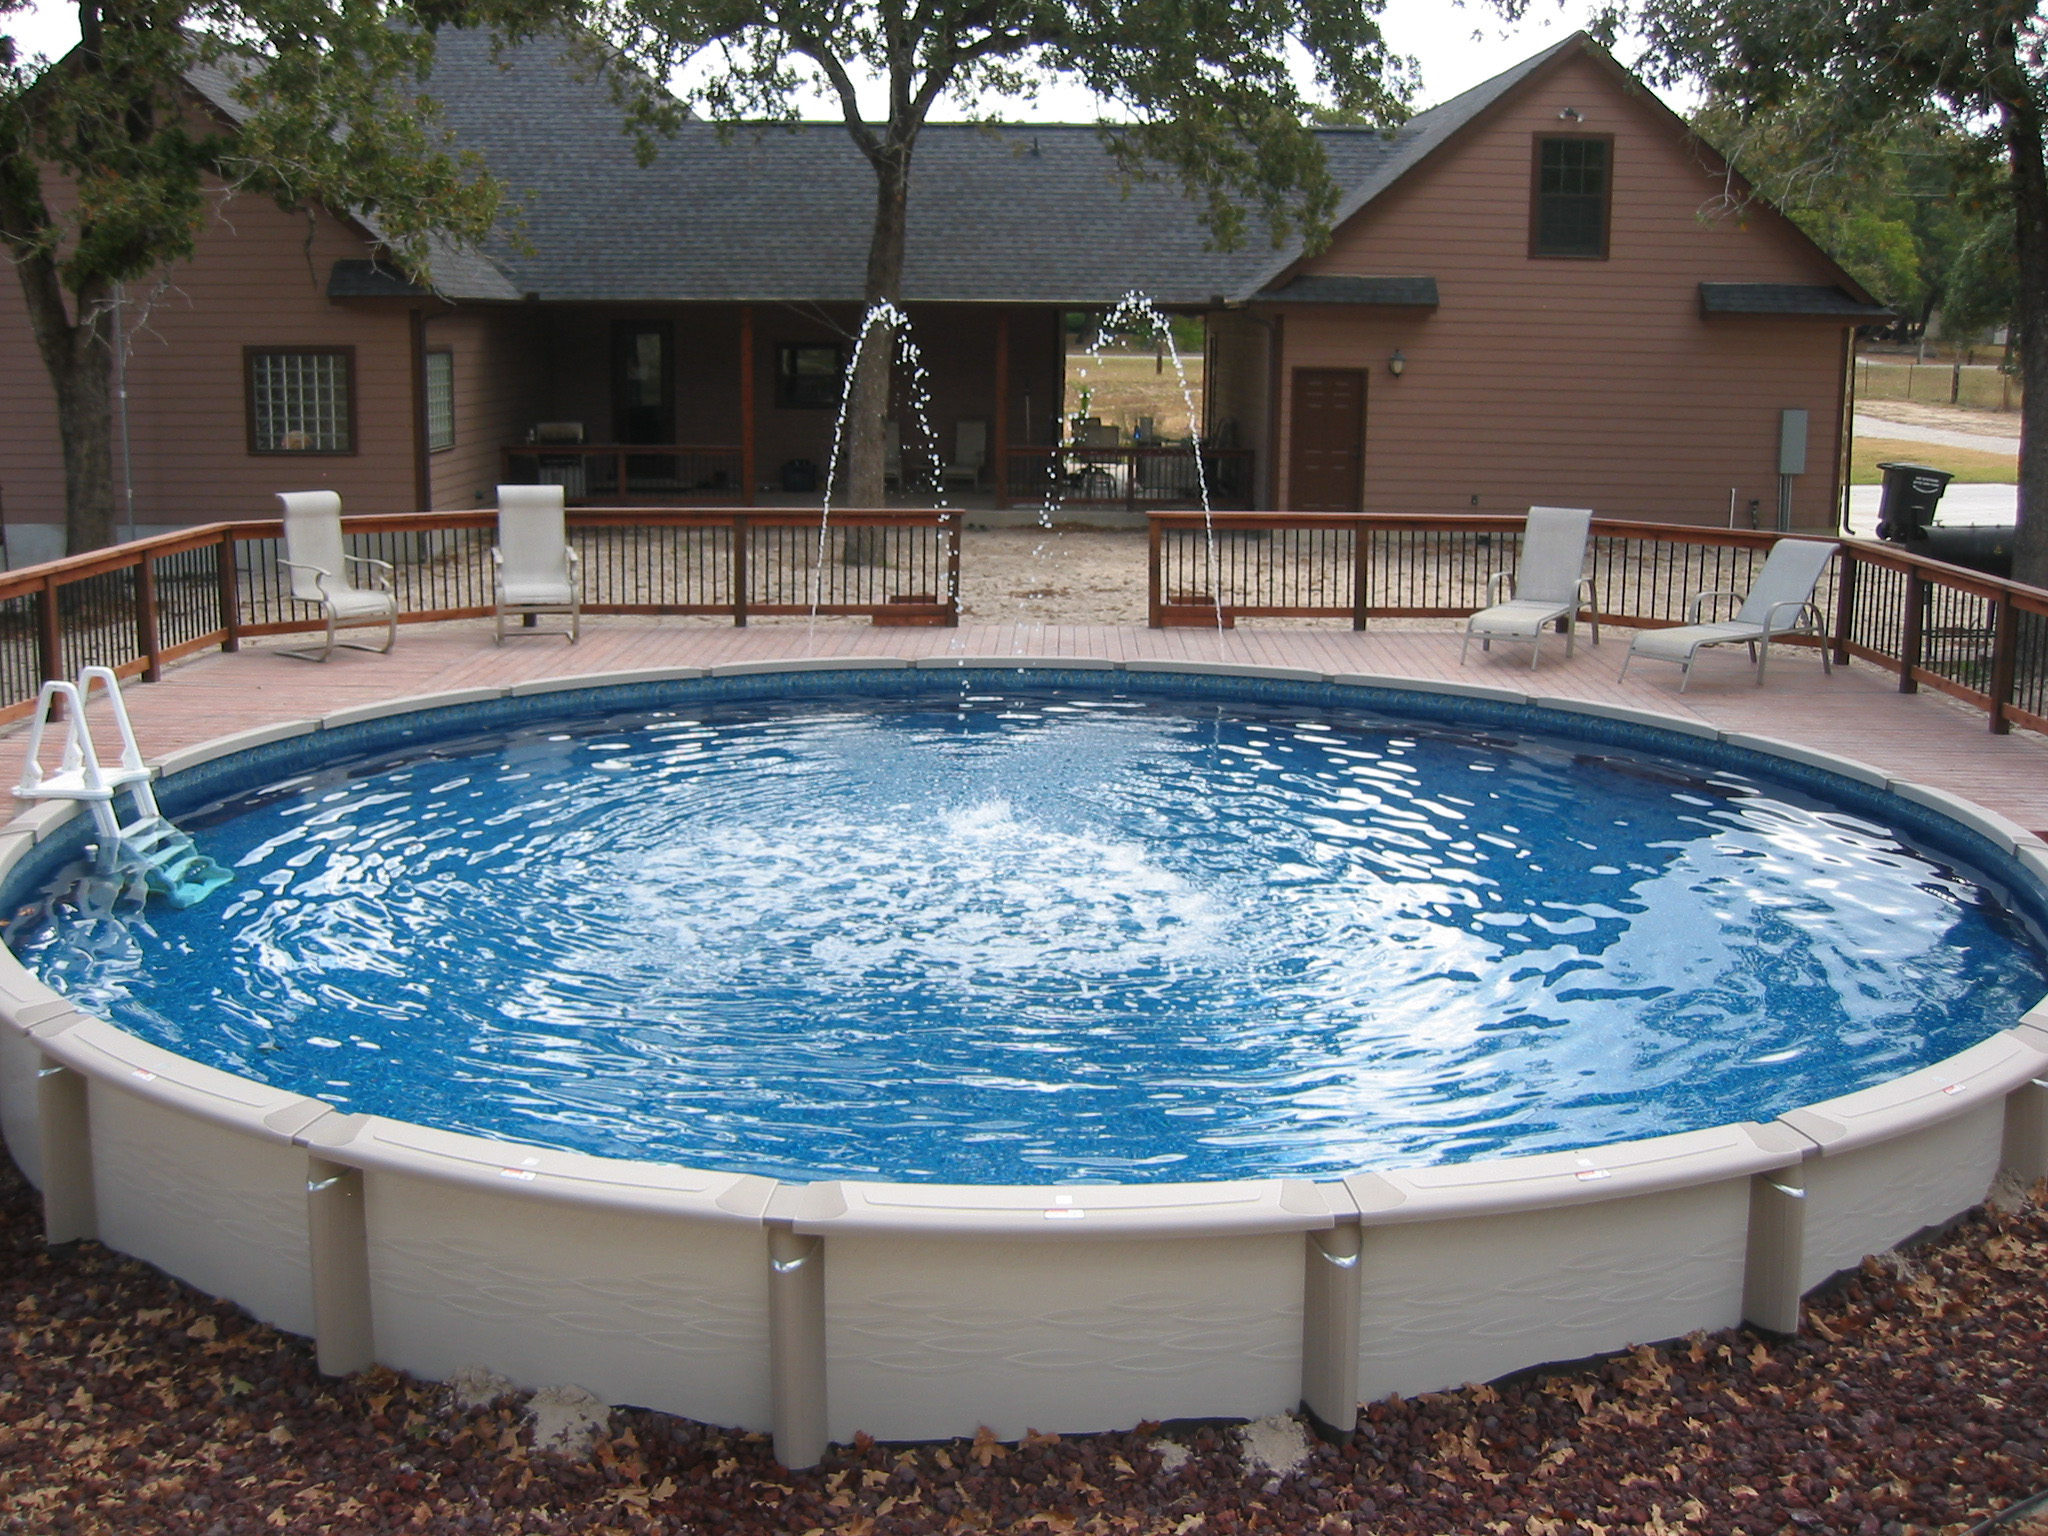 Best above ground swimming pools design on vine for Best swimming pools